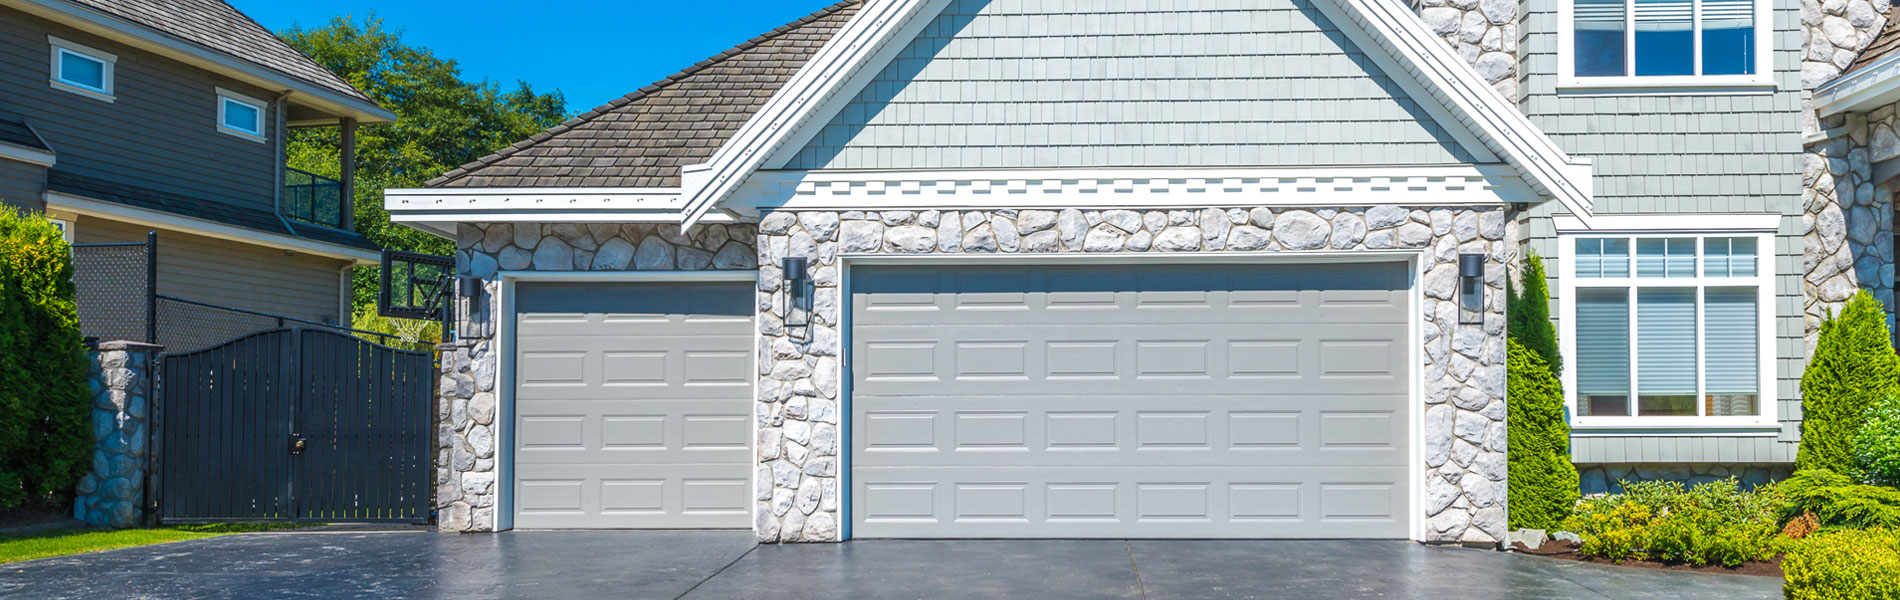 Eagle Garage Door Stone Park, IL 708-298-0336